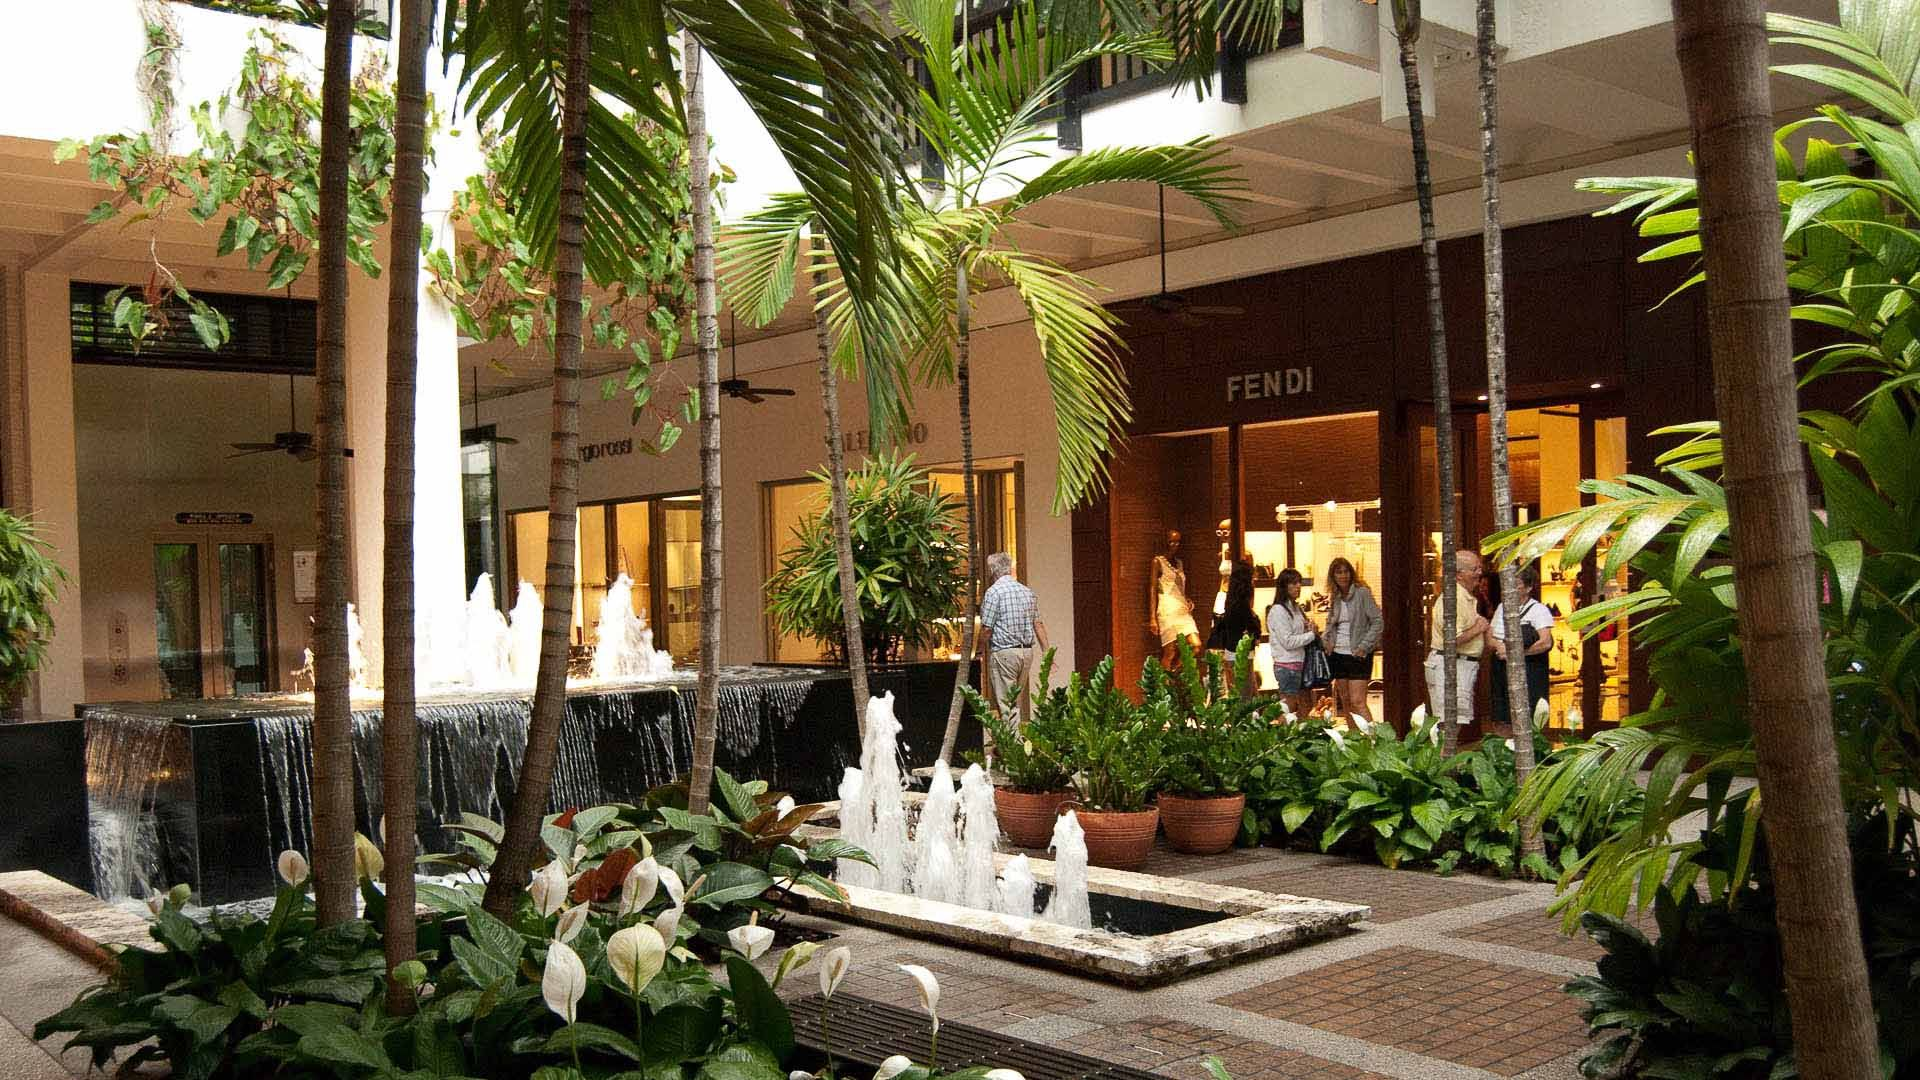 Bal harbour interior tropical fountains luxury retail